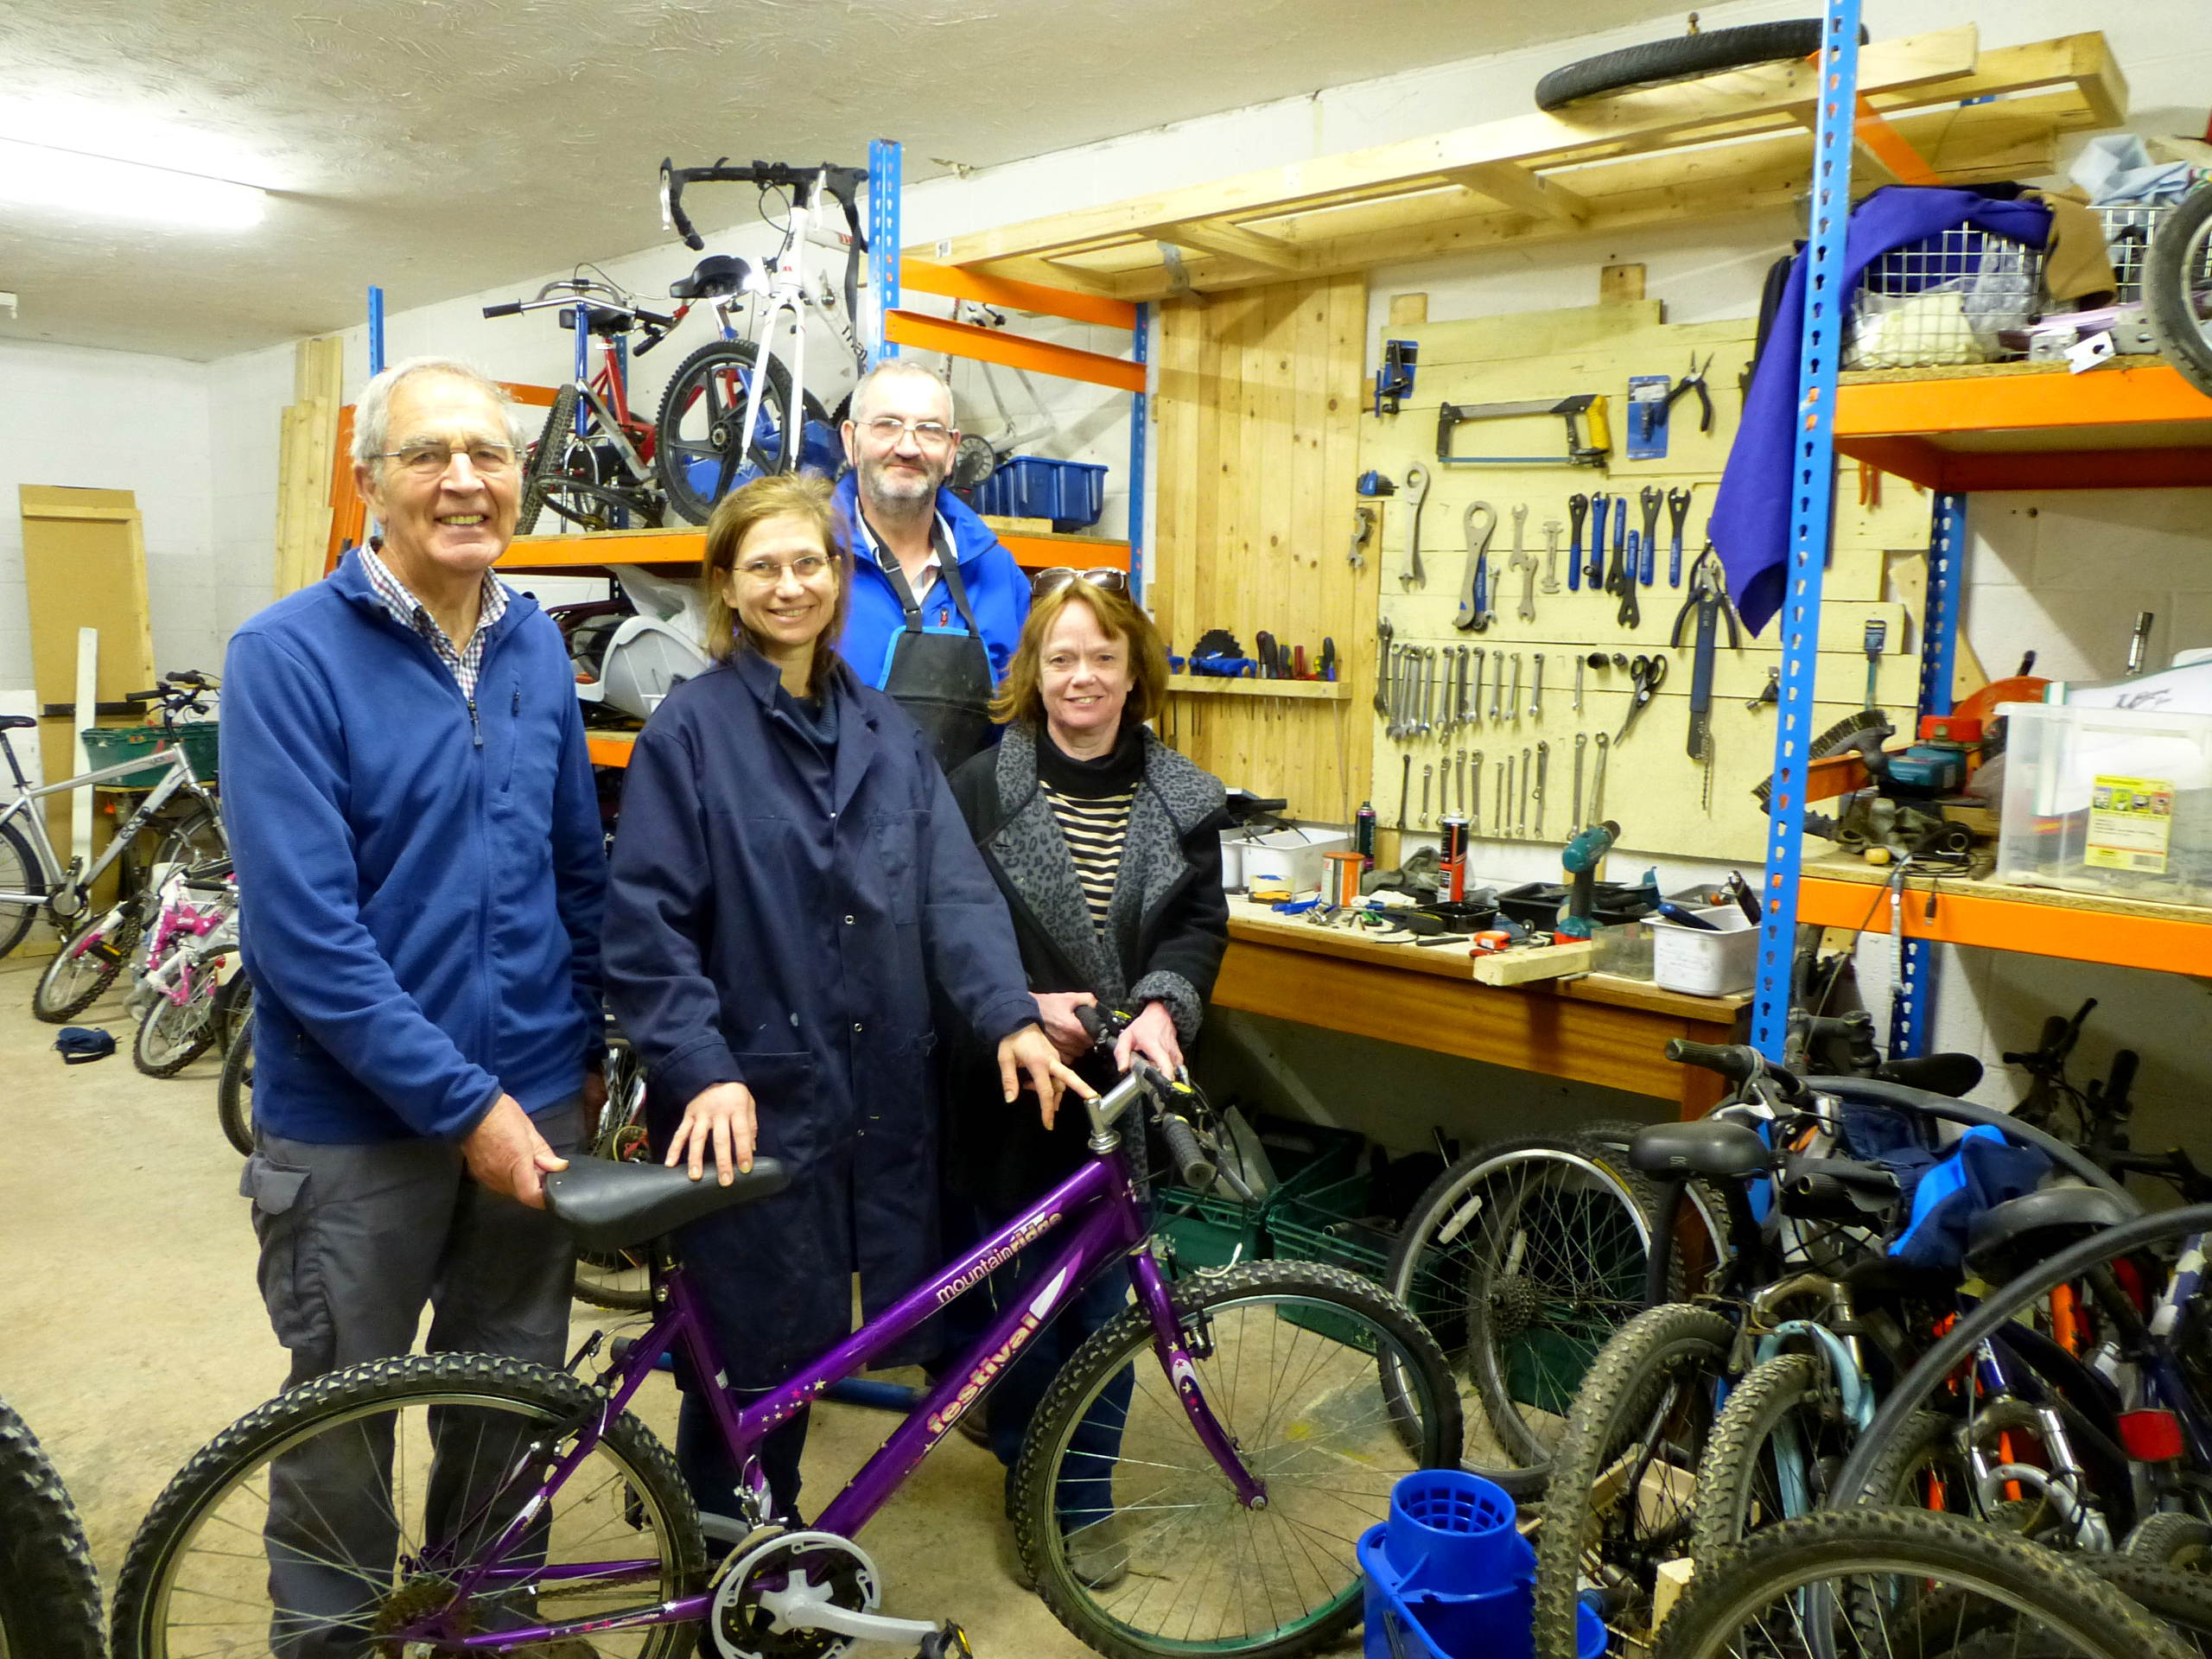 Blacon Bike Refurbishment Staff and Volunteers